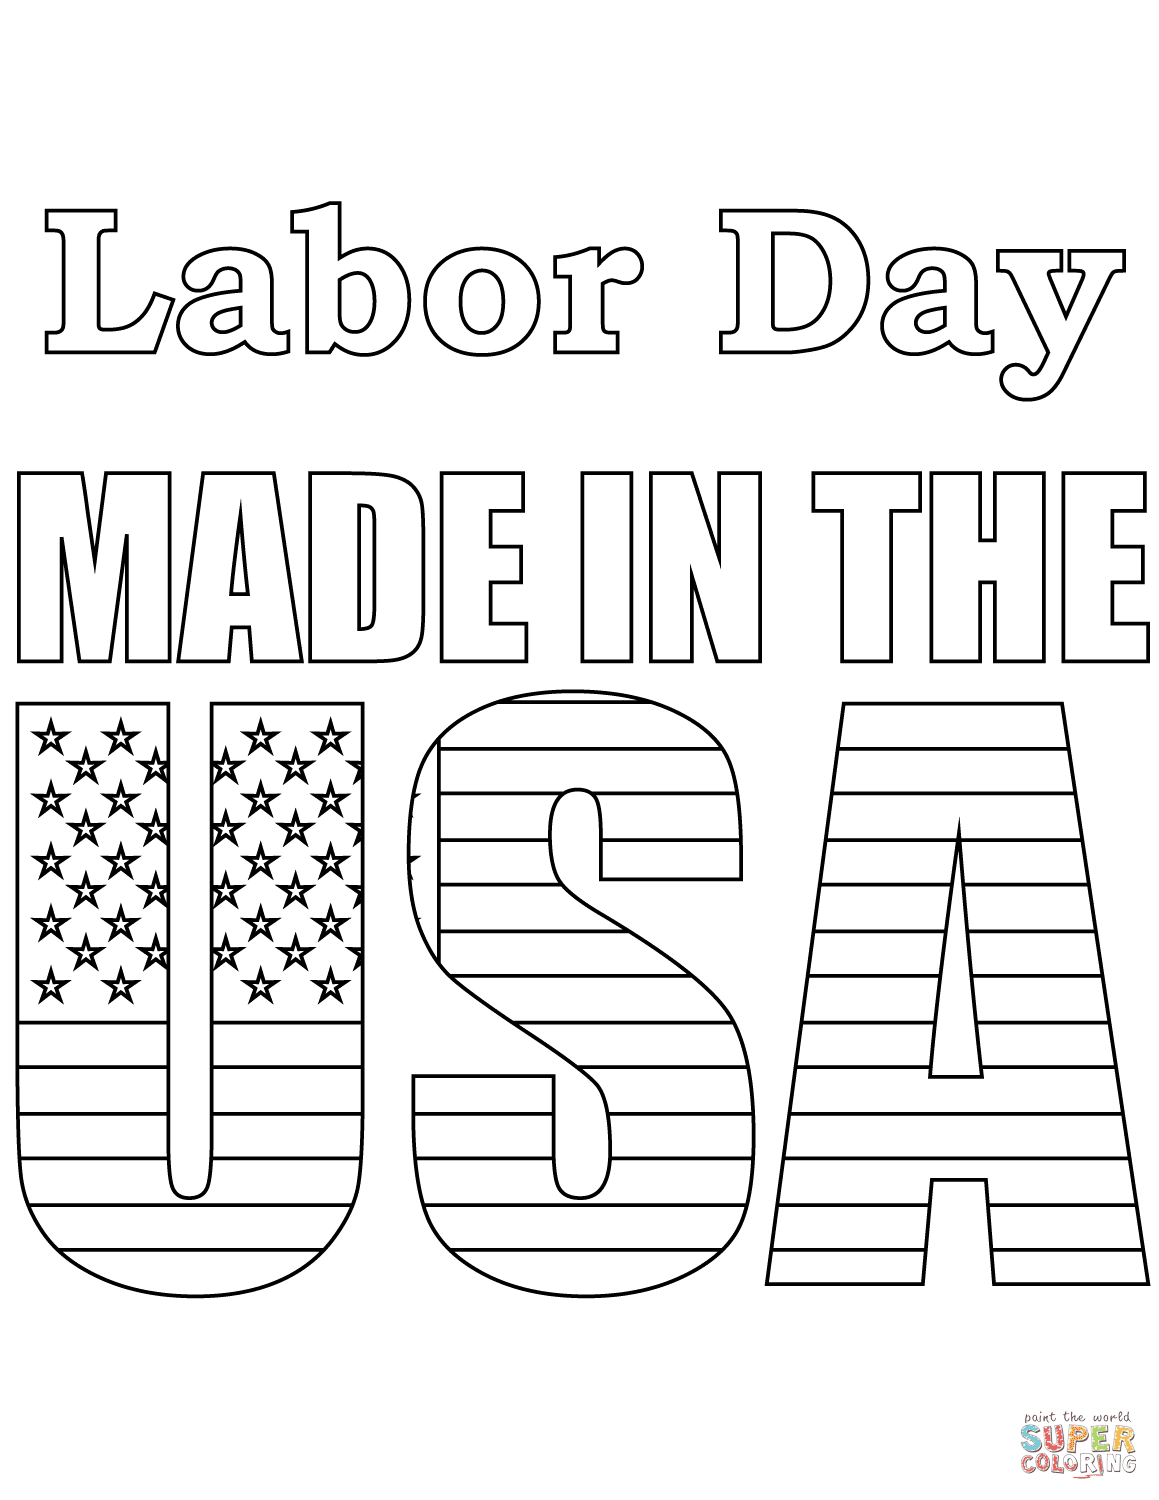 Labor Day - Made in the USA coloring page | Free Printable ...